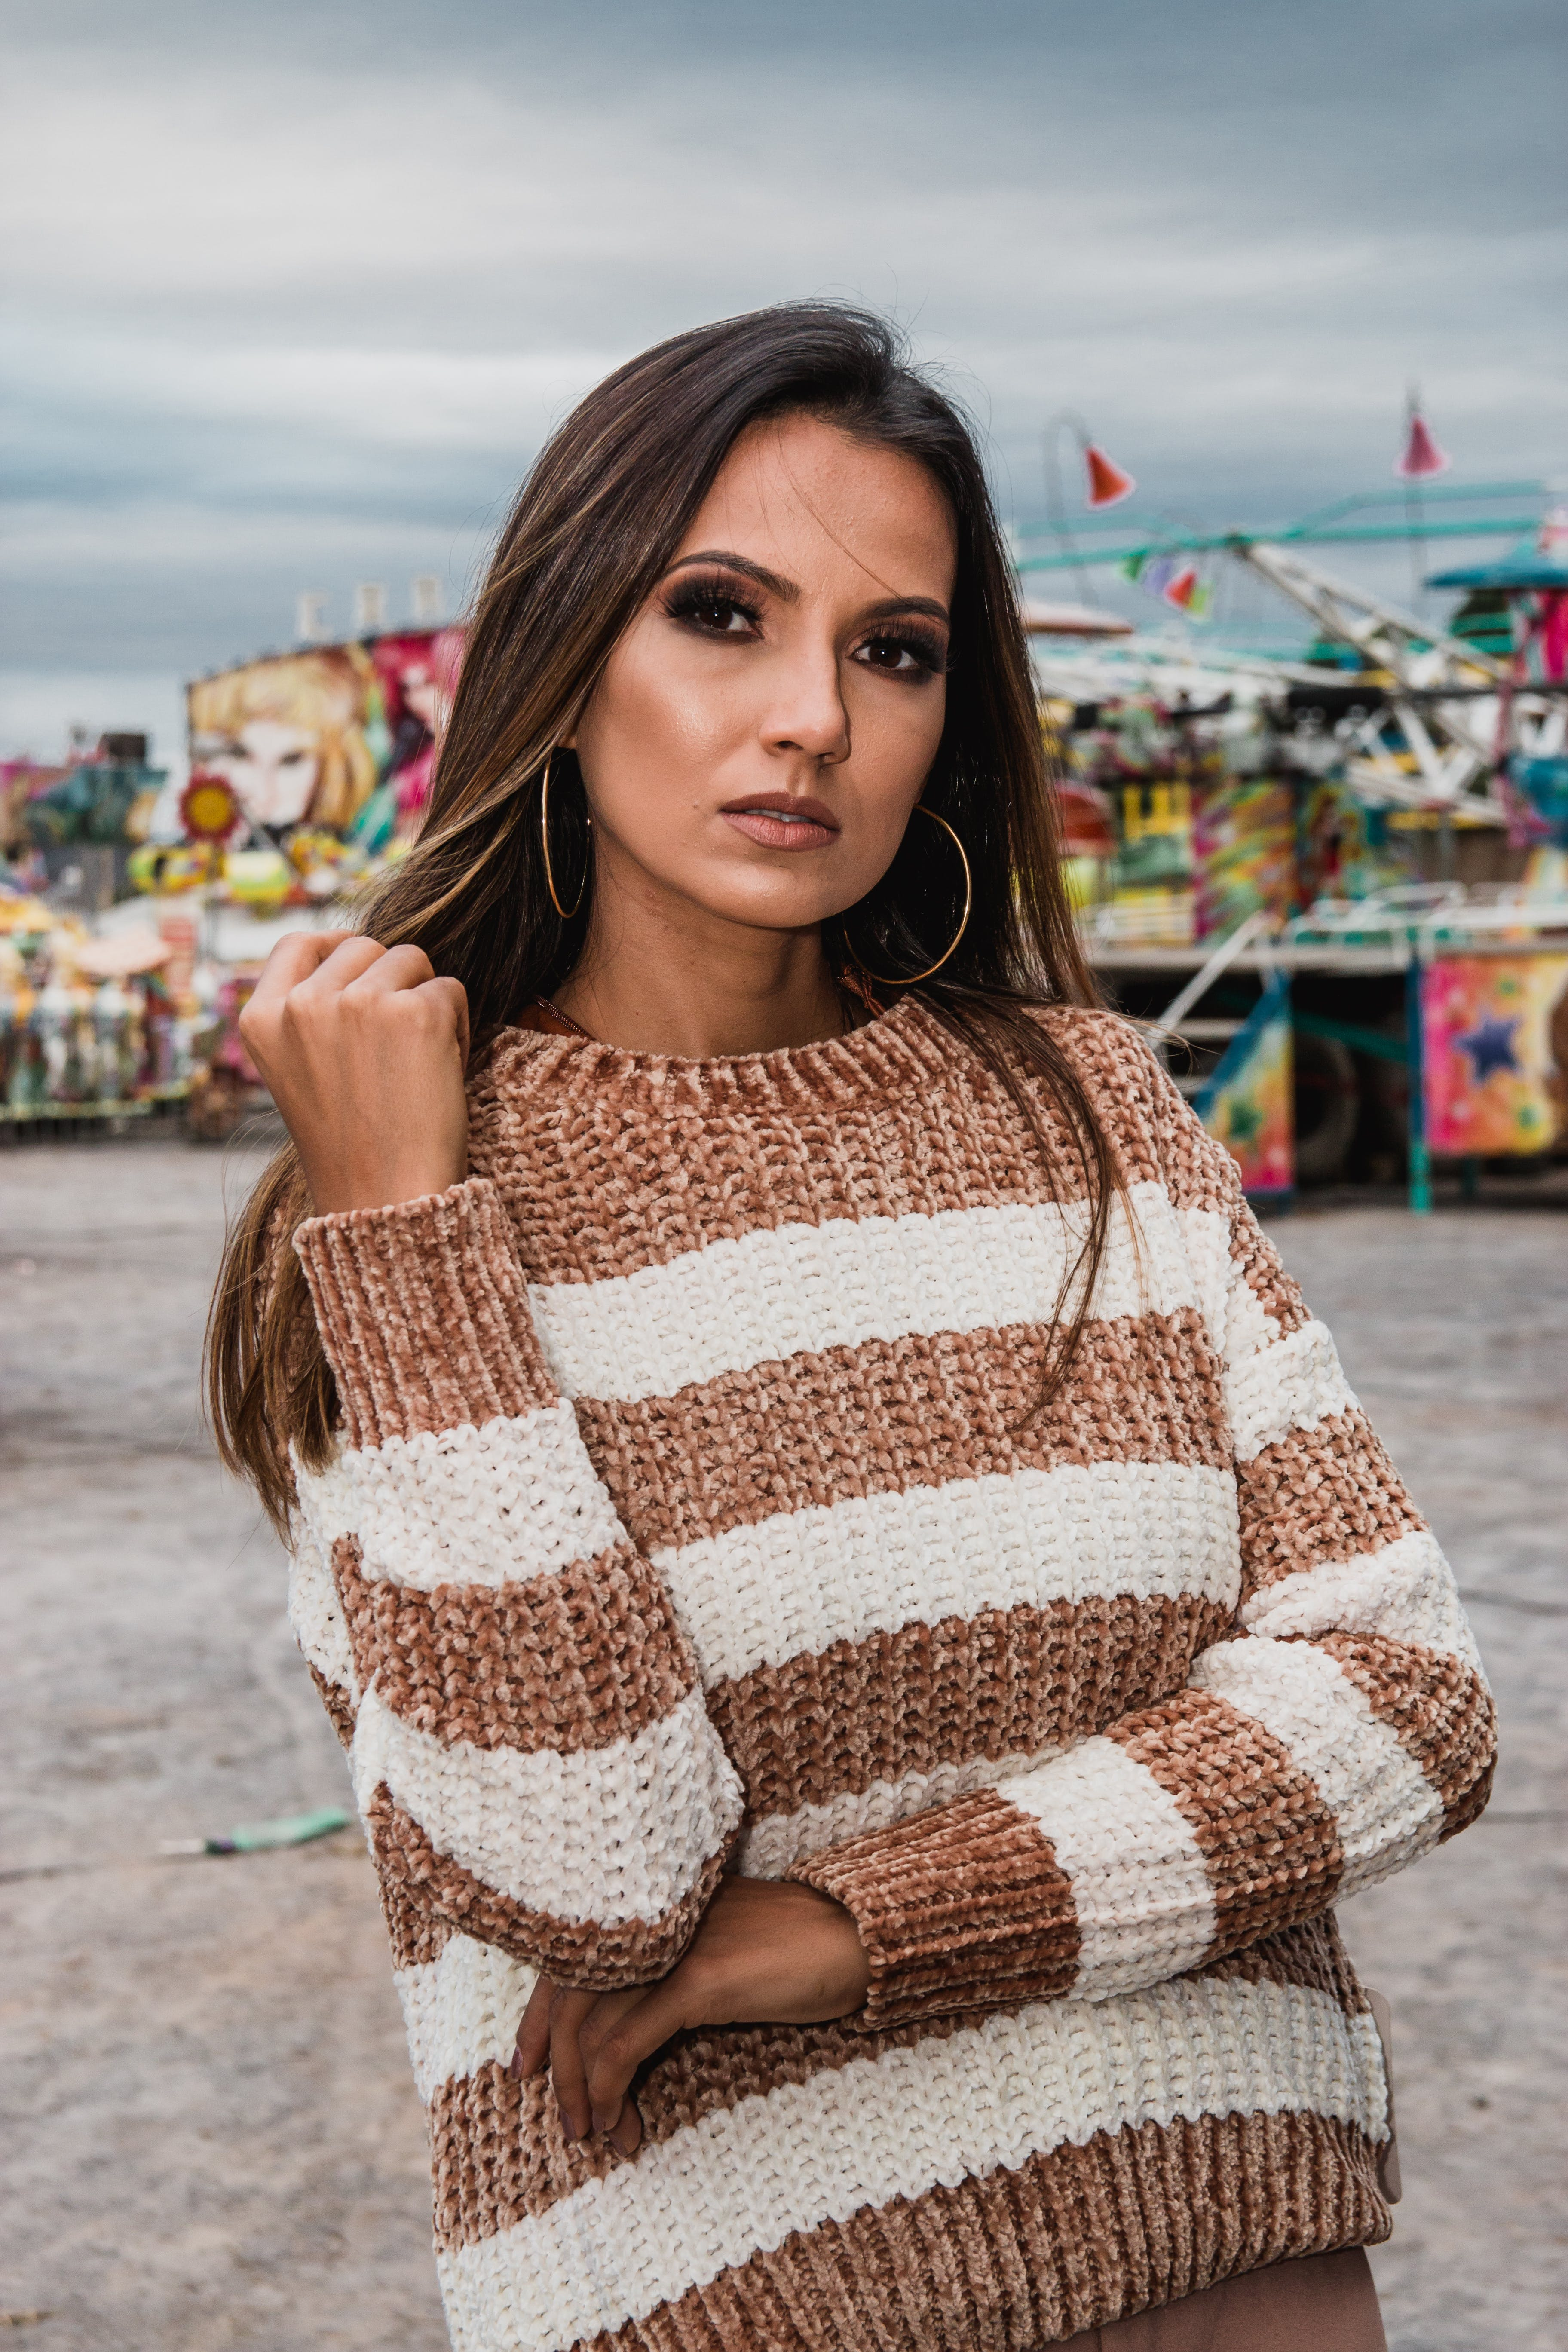 Woman Wearing Knitted White And Brown Stripe Sweater